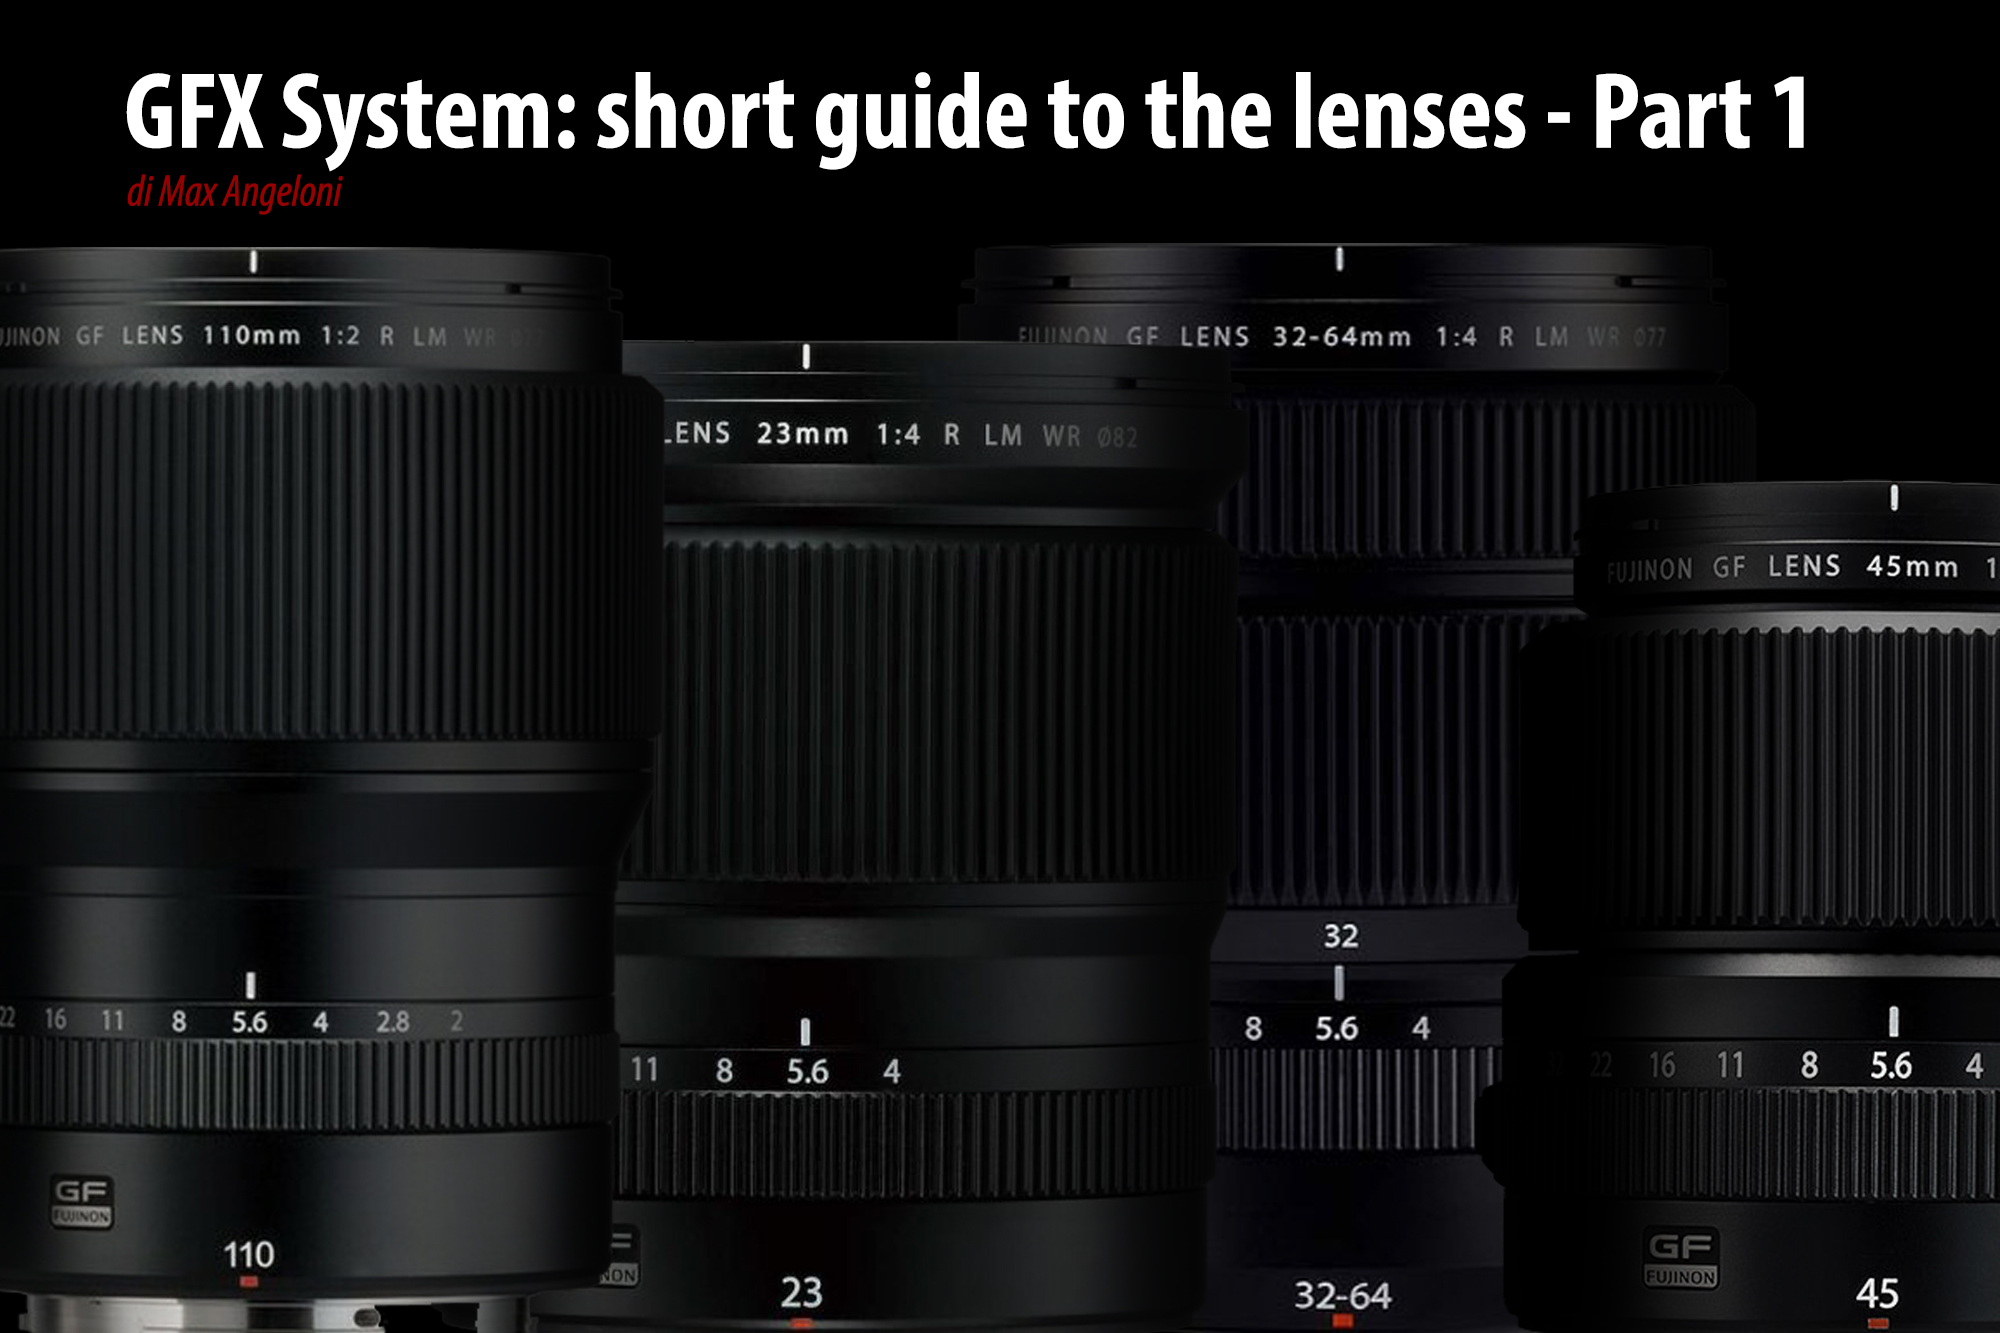 GFX System: short guide to the lenses - Part 1